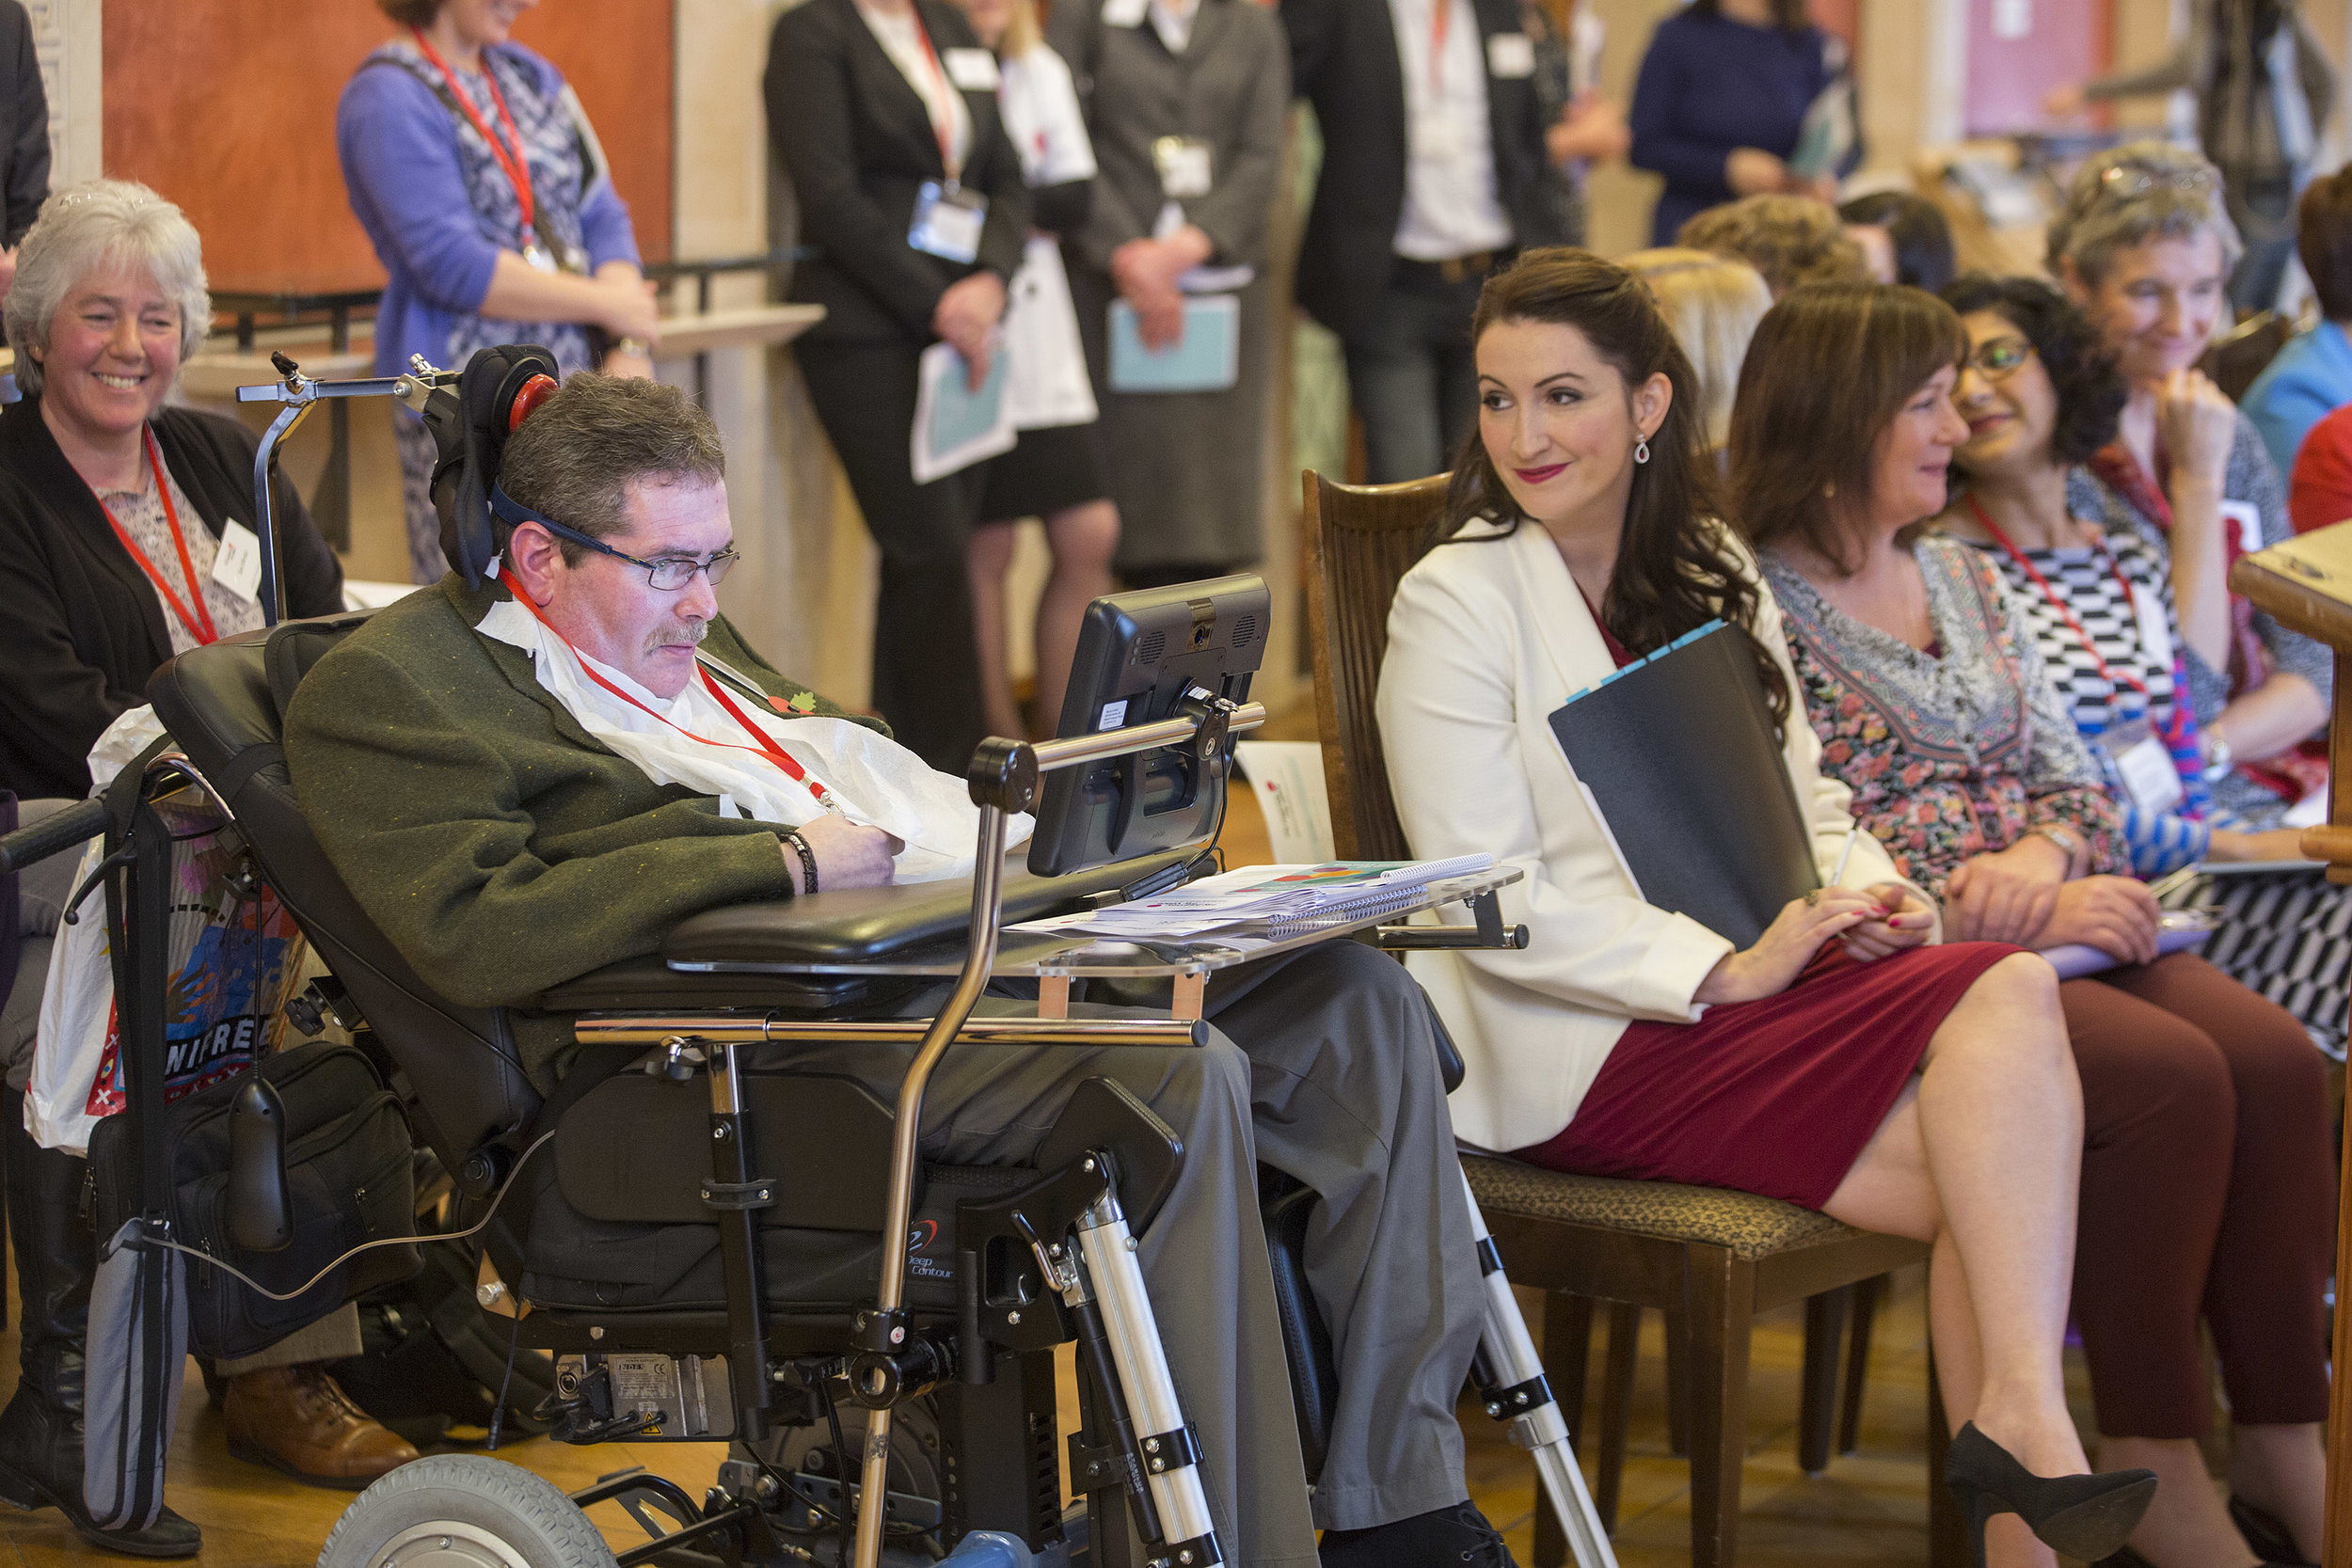 Neill at the Stormont launch of My Journey My Voice November 2015 with the then Junior Minister, Emma Little-Pengelly MP.